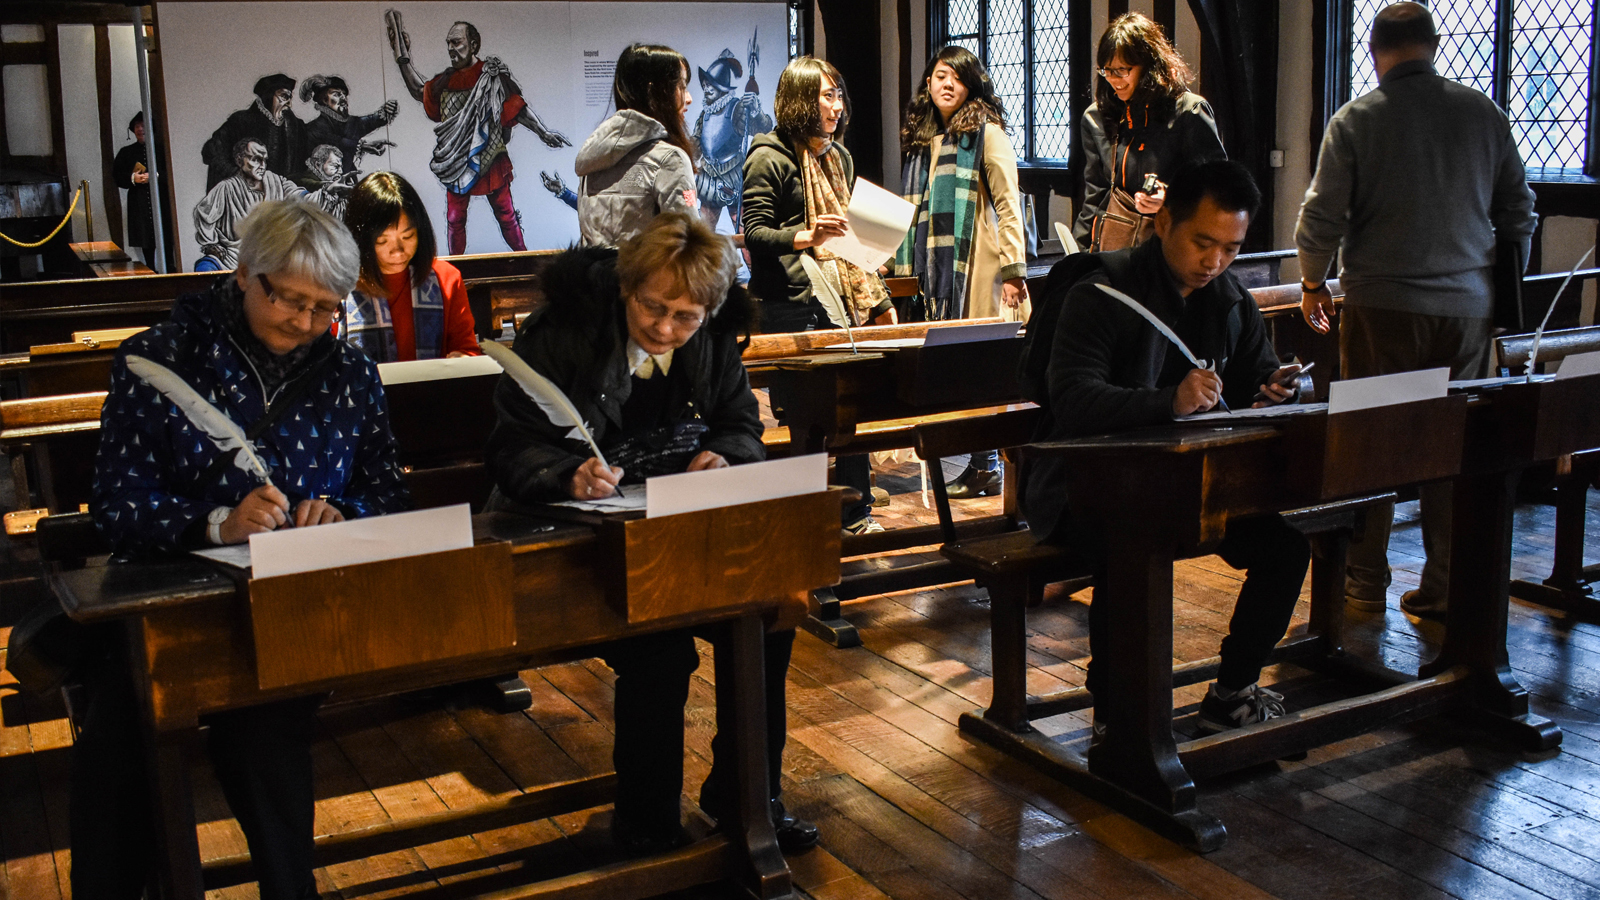 Image Makers Shakespeare's Schoolroom & Guildhall